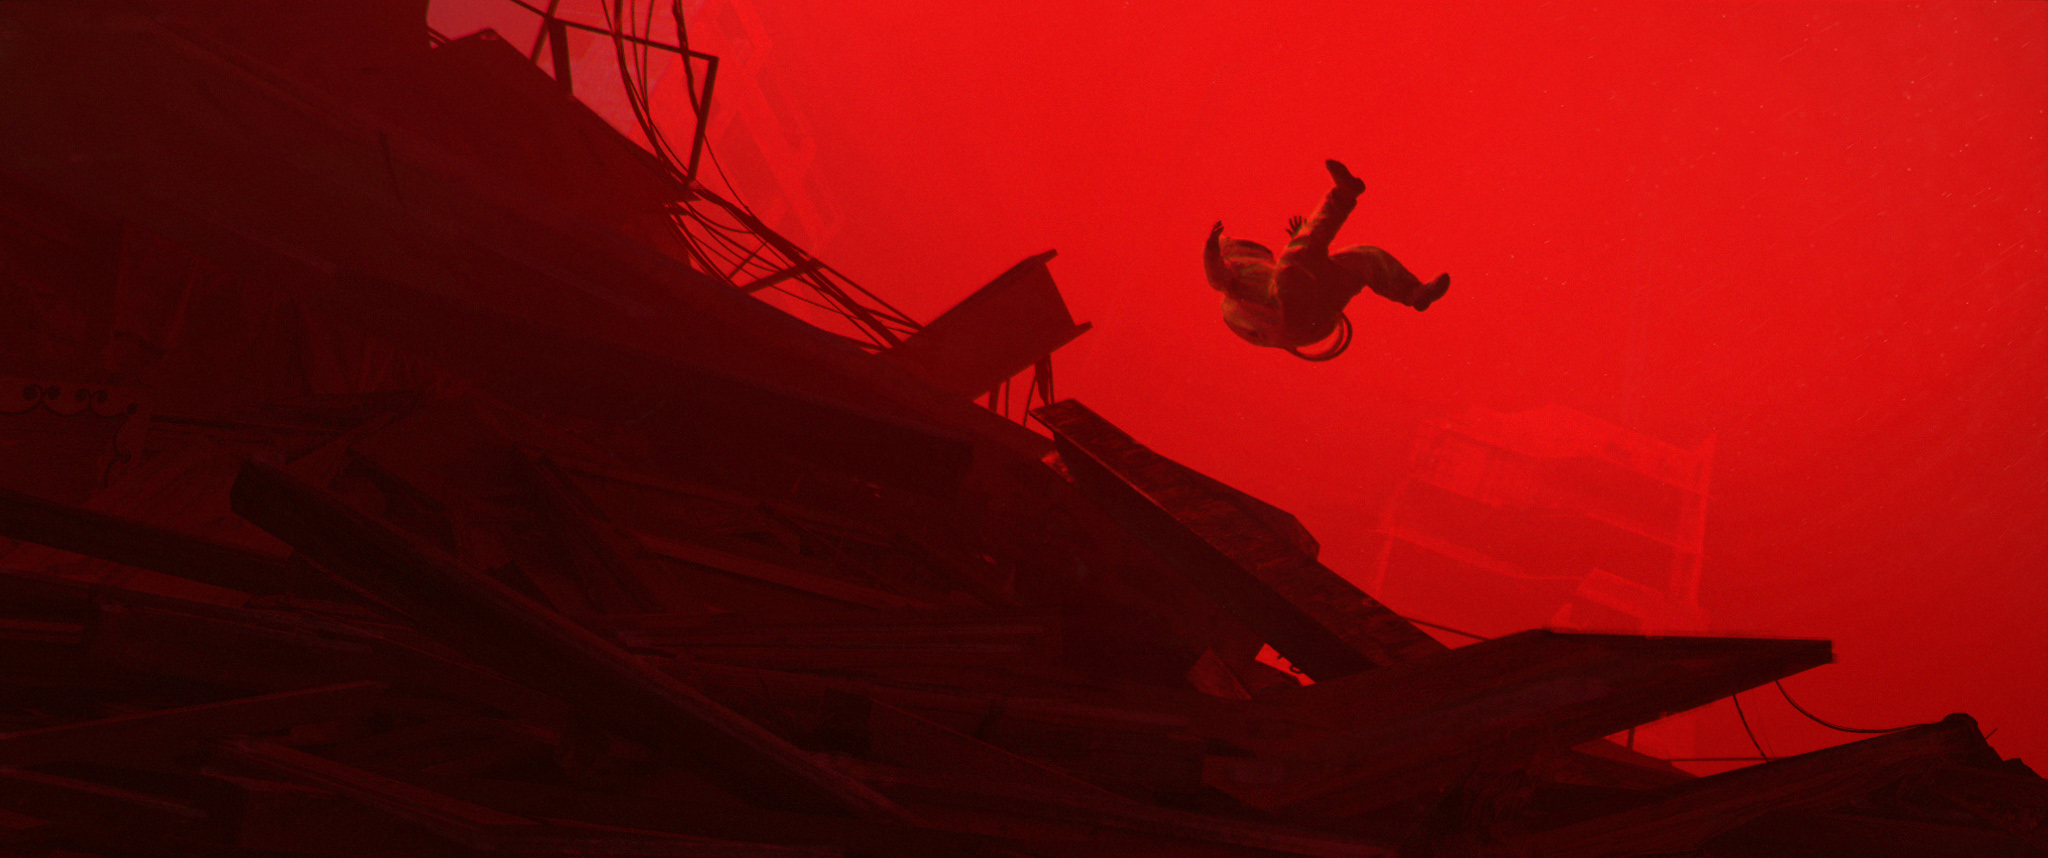 Cinematic Concept Design, ASHES, Free Falling